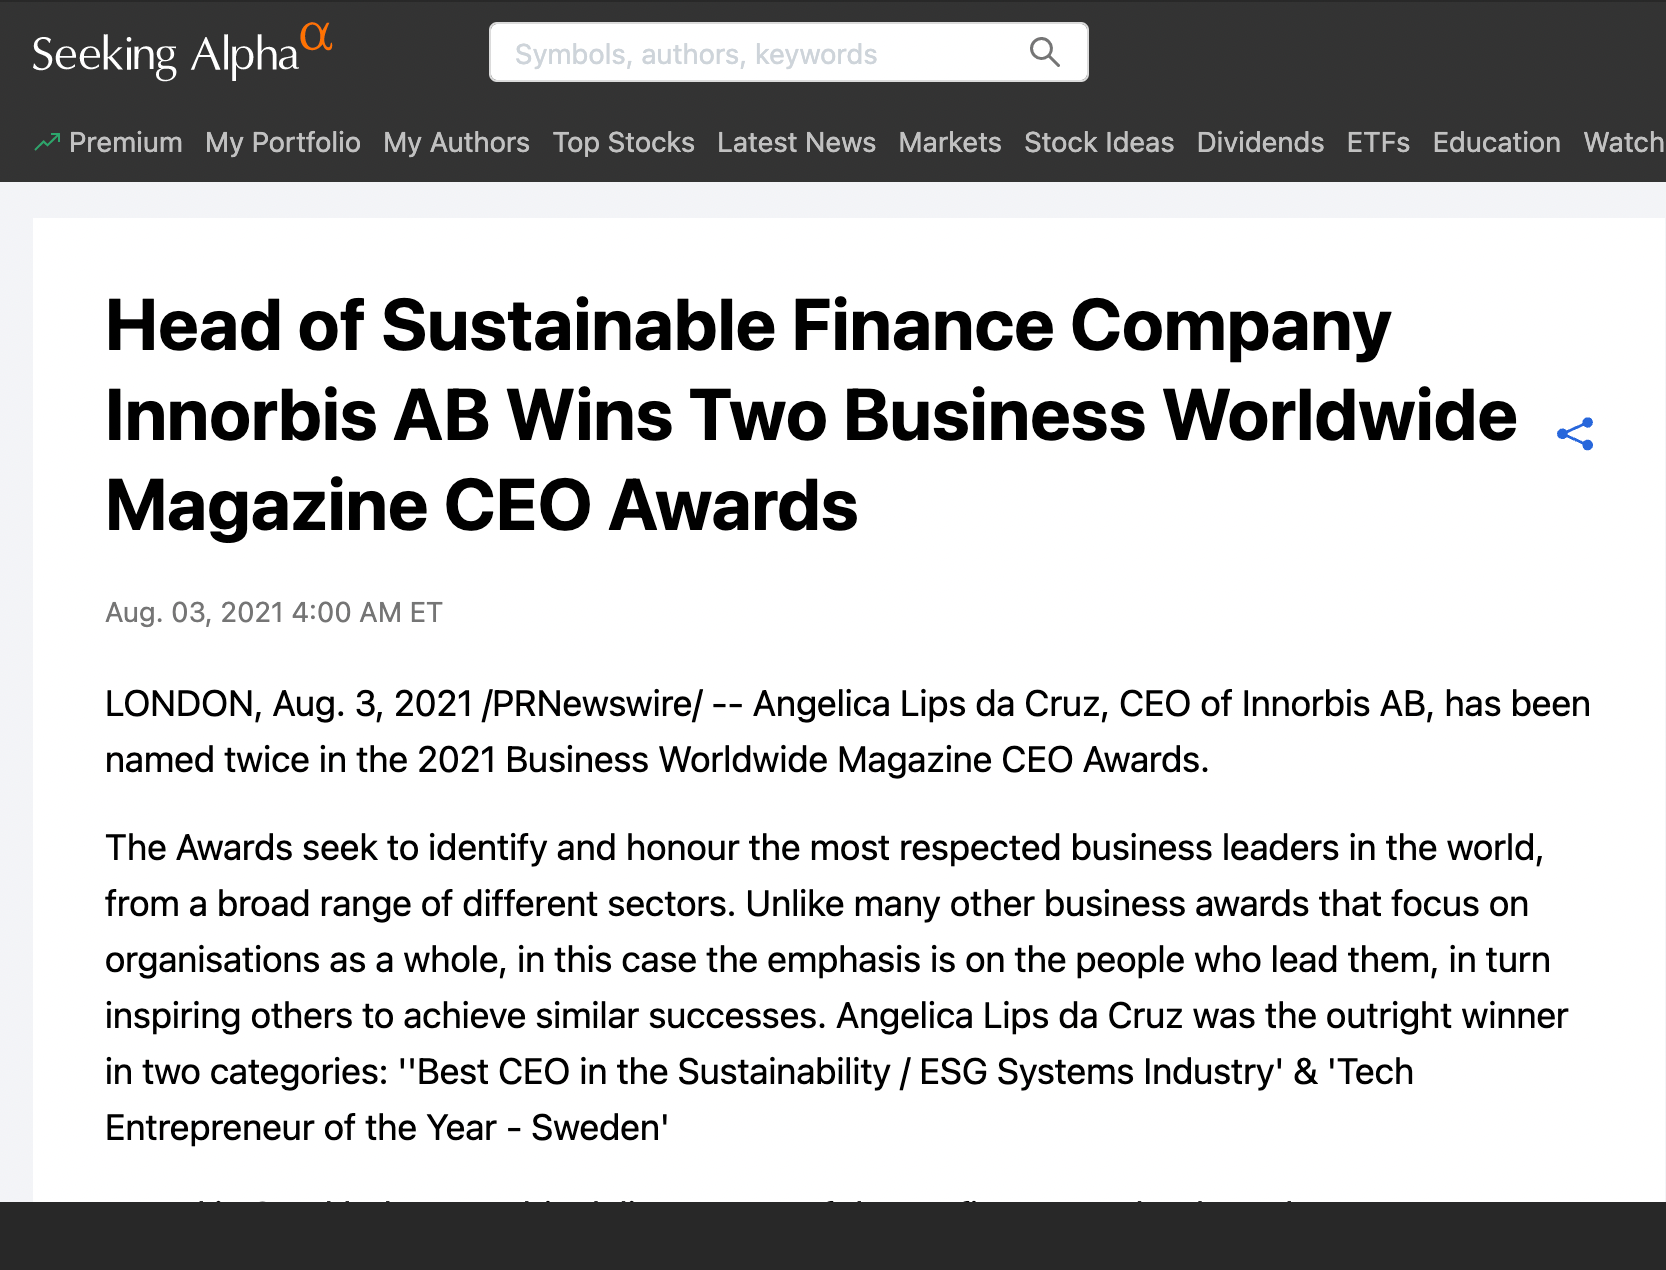 ''Best CEO in the Sustainability / ESG Systems Industry' & 'Tech Entrepreneur of the Year - Sweden'